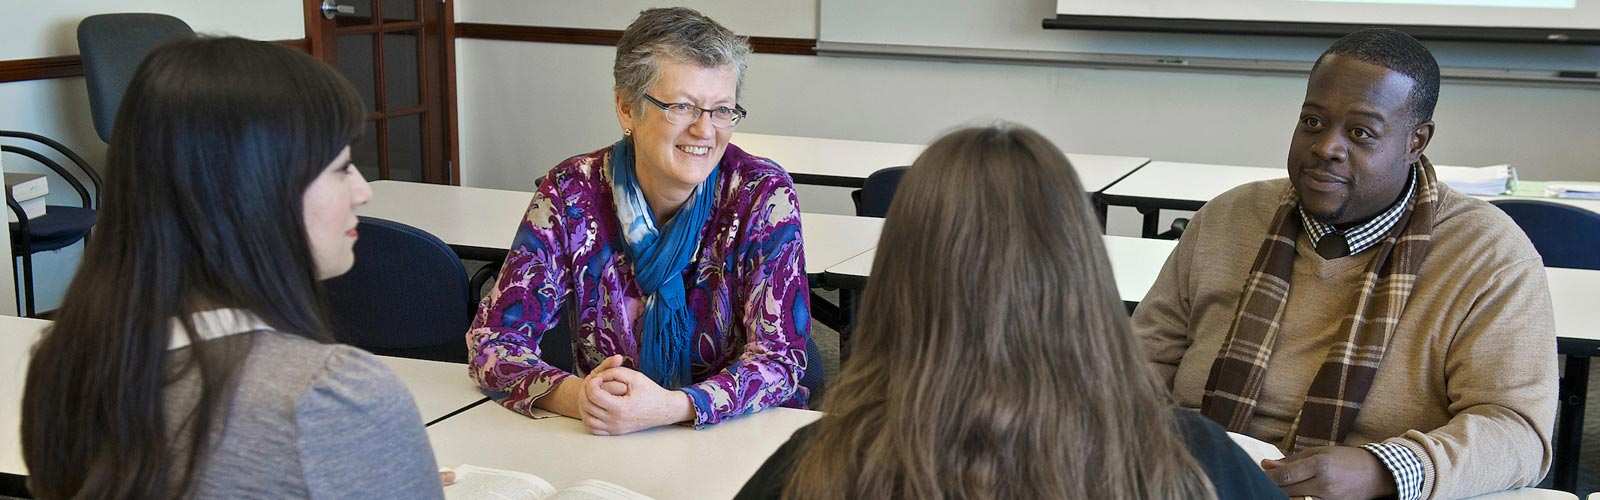 Negotiation and Conflict resolution at Creighton